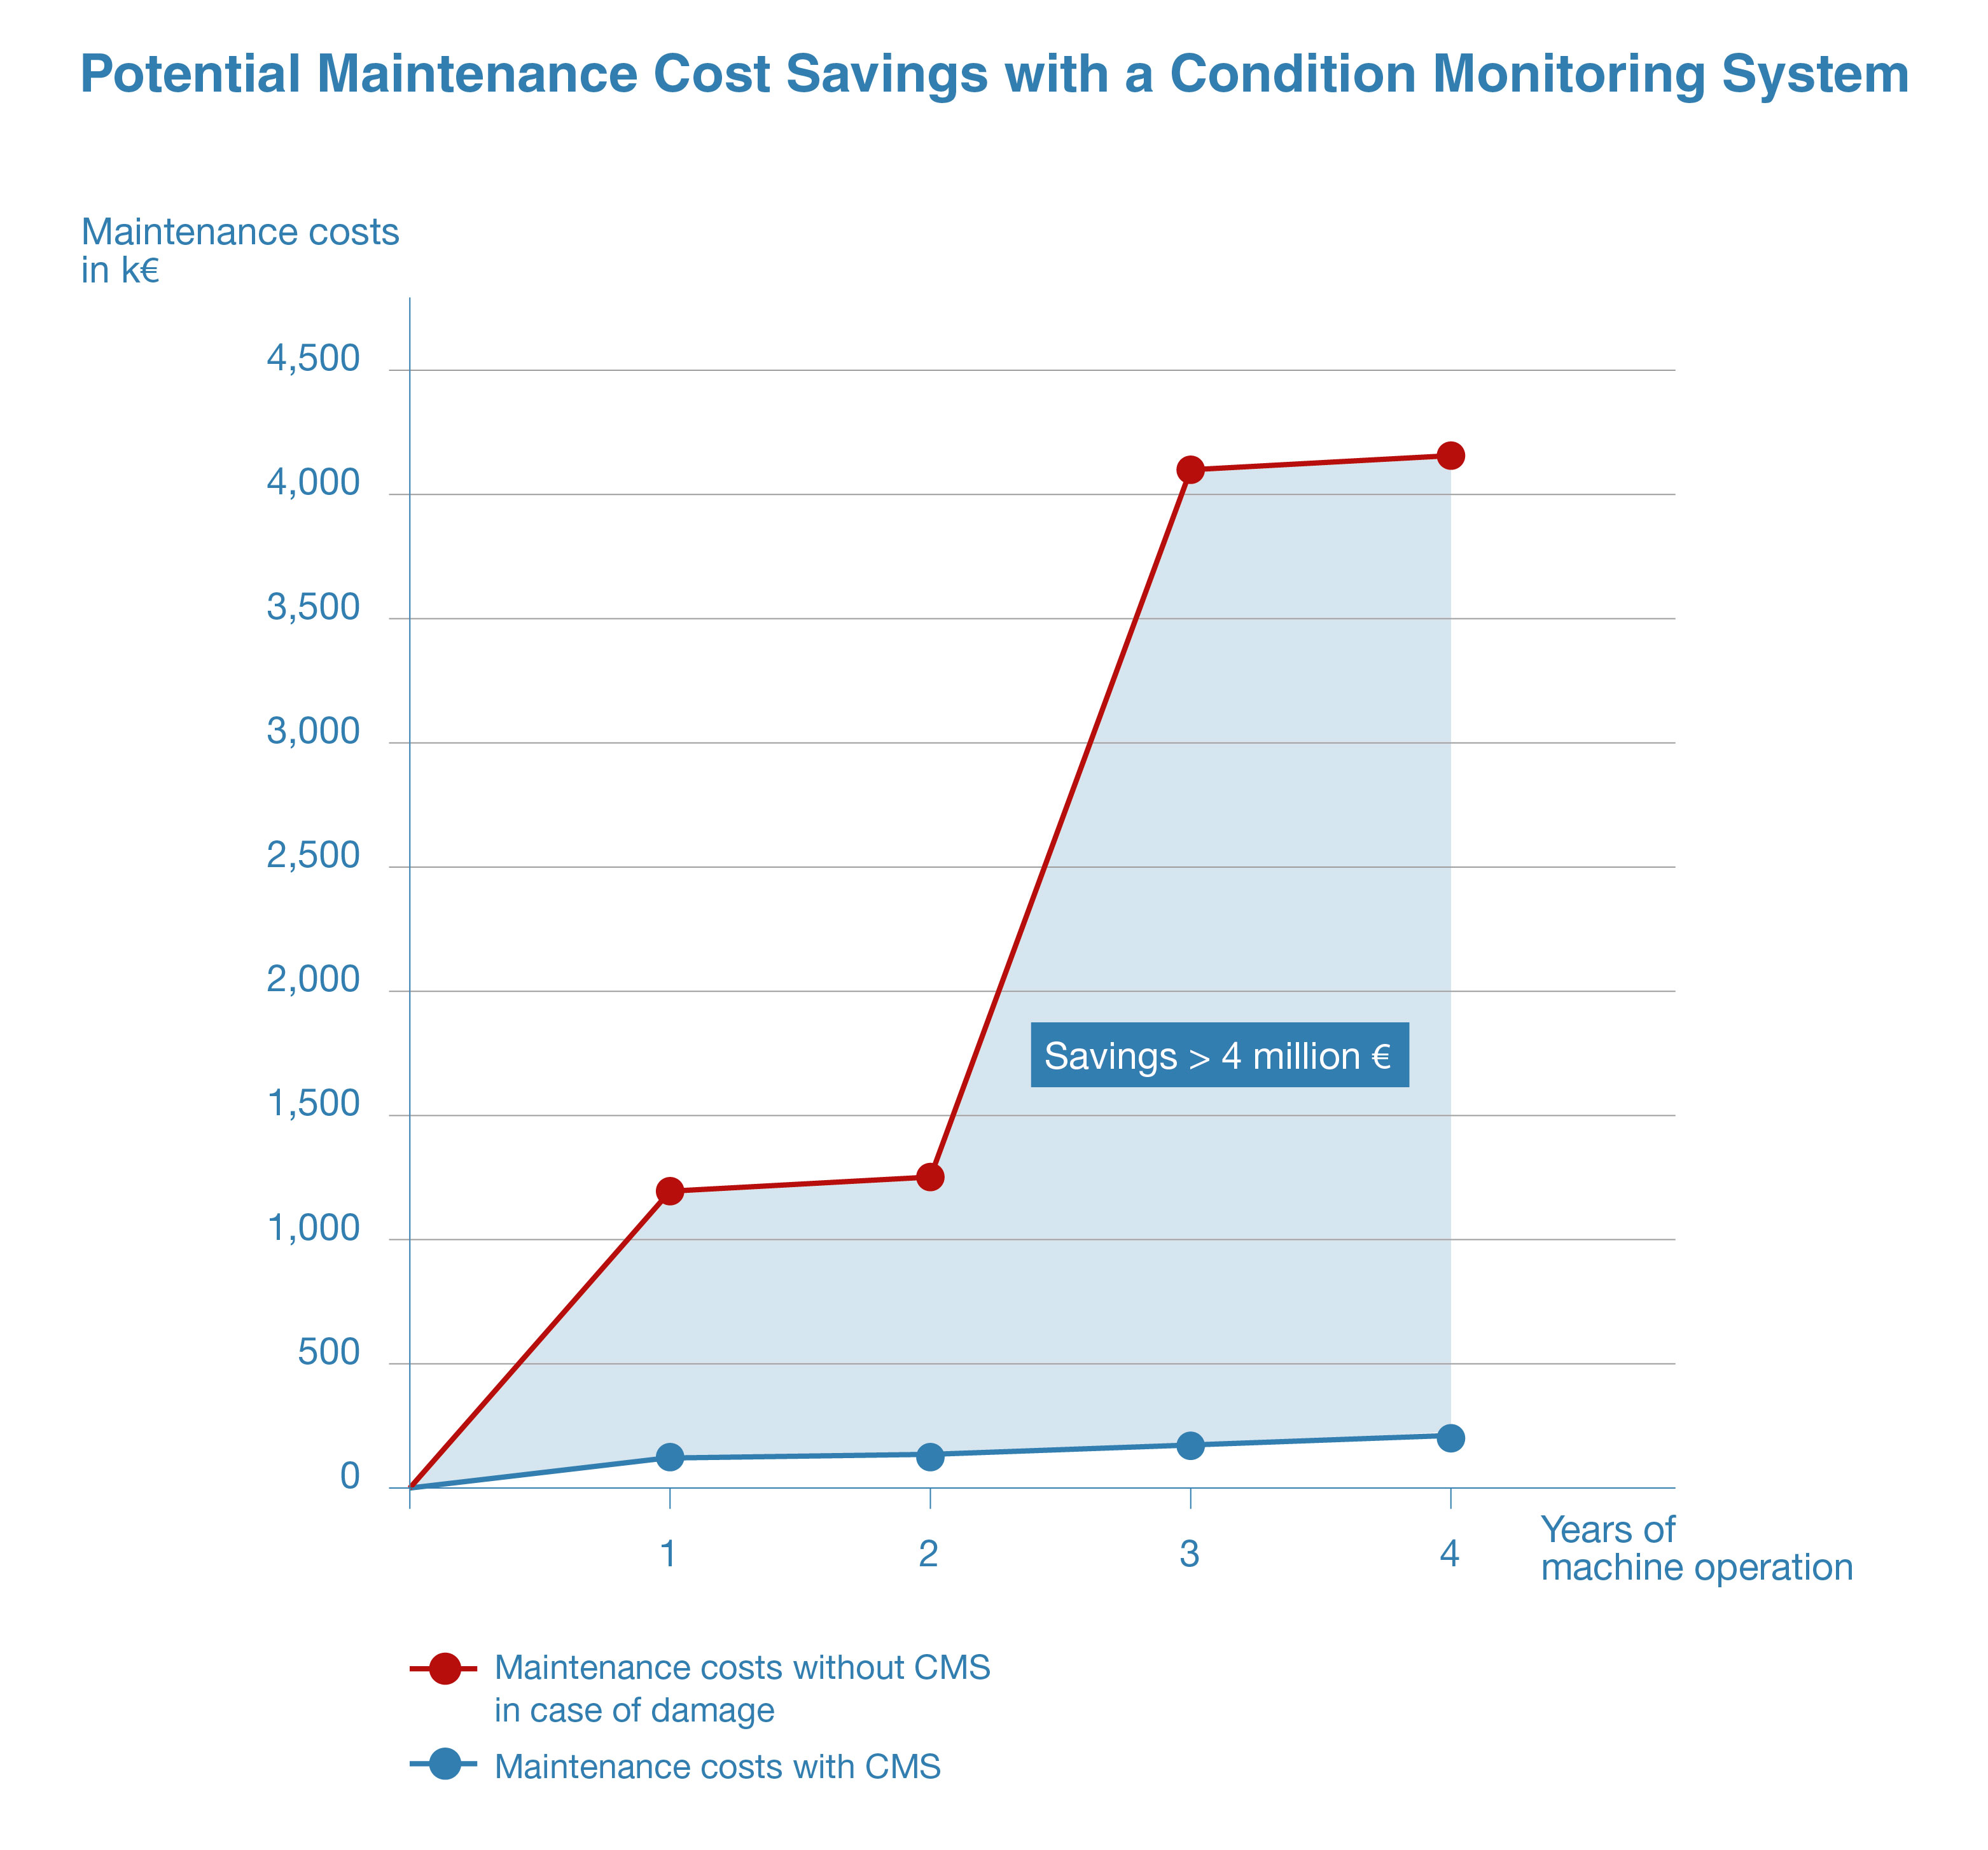 Potential savings by using a CMS vs. maintenance without CMS